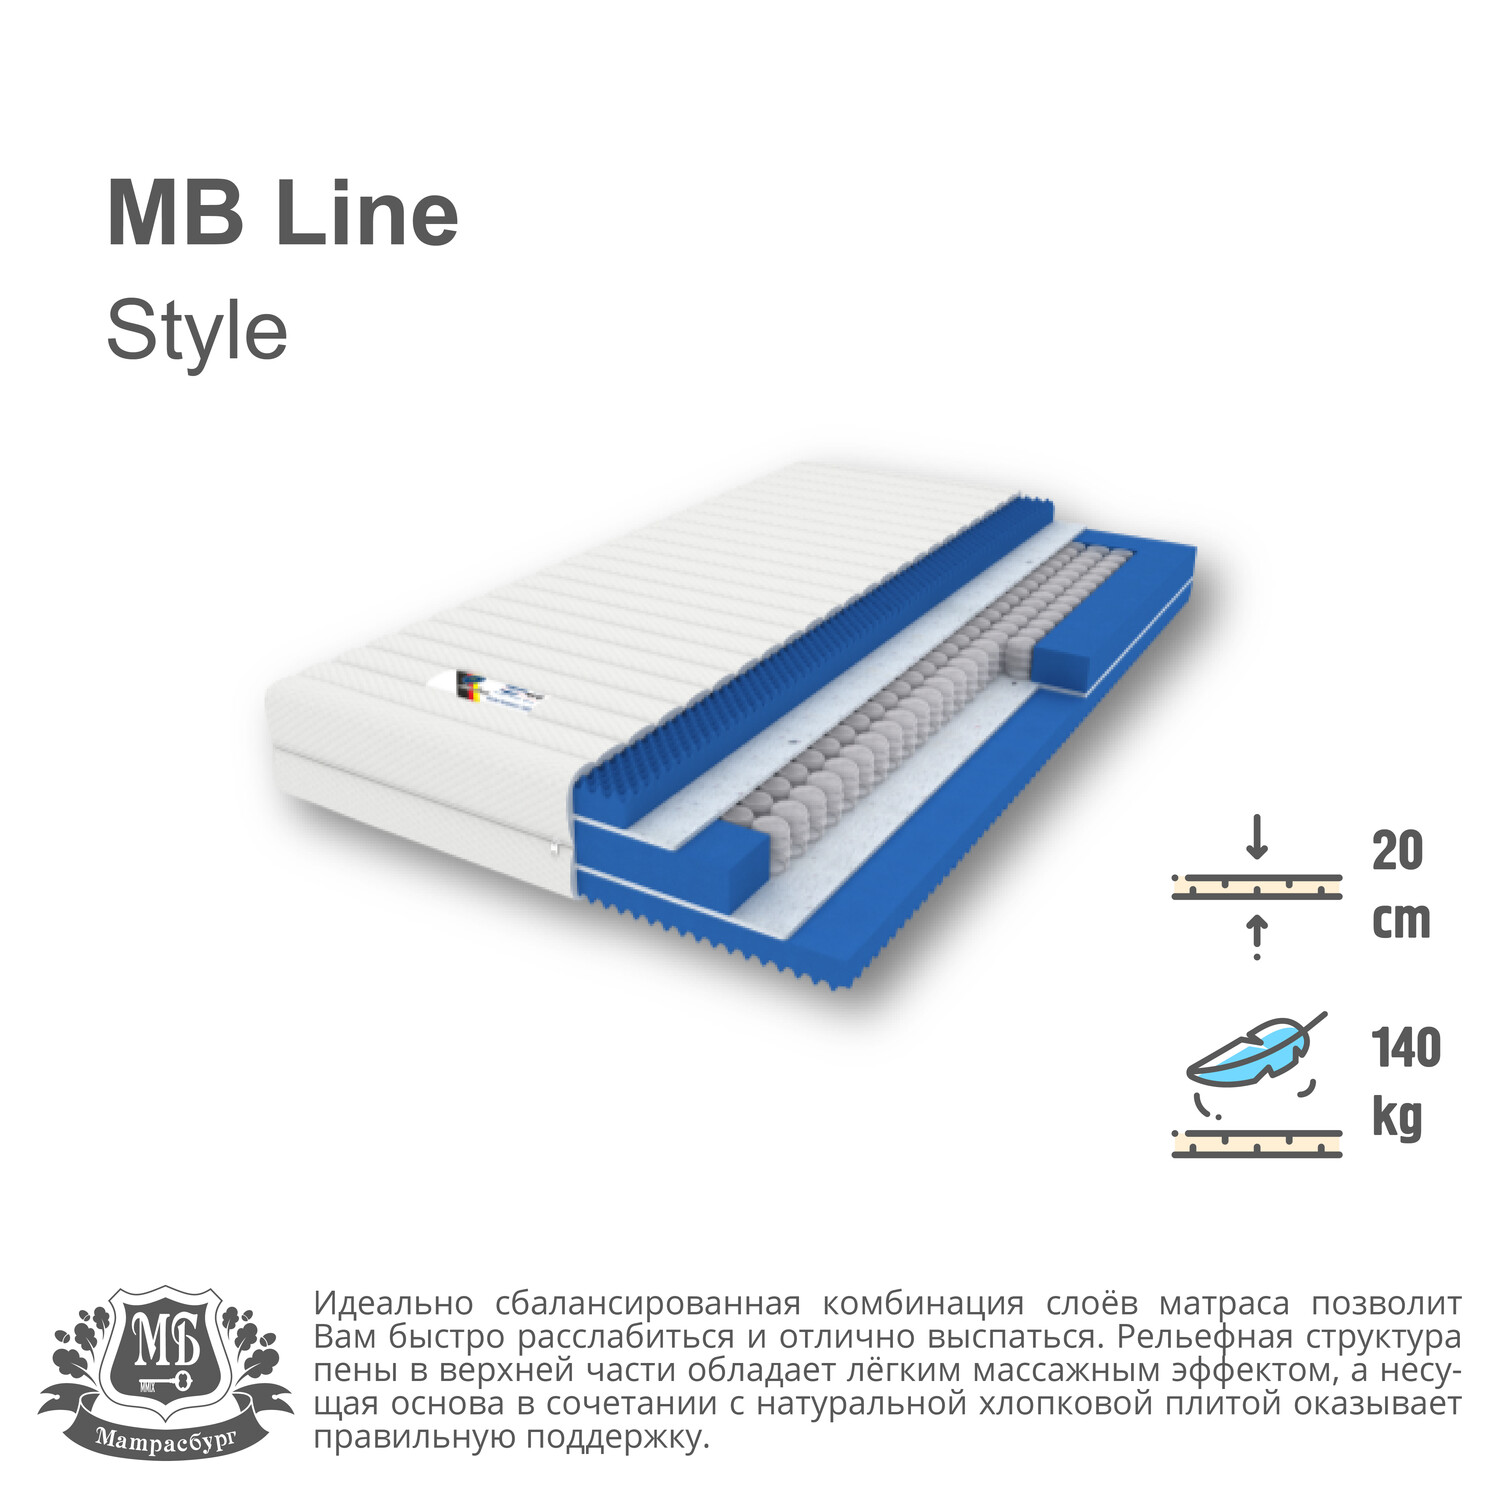 MB Line - Style